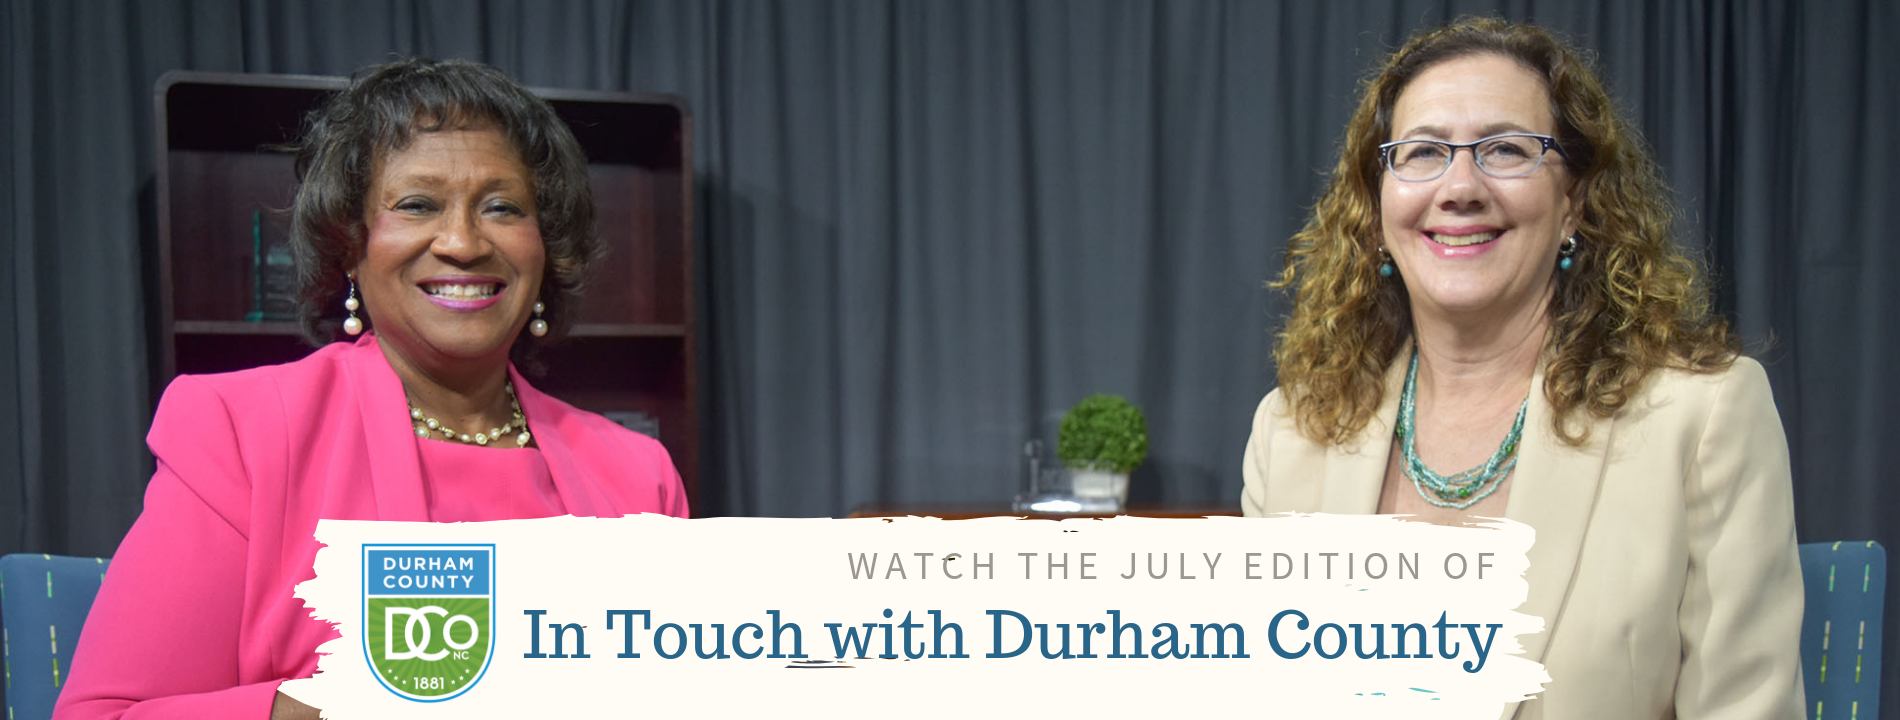 In Touch with Durham County July 2019